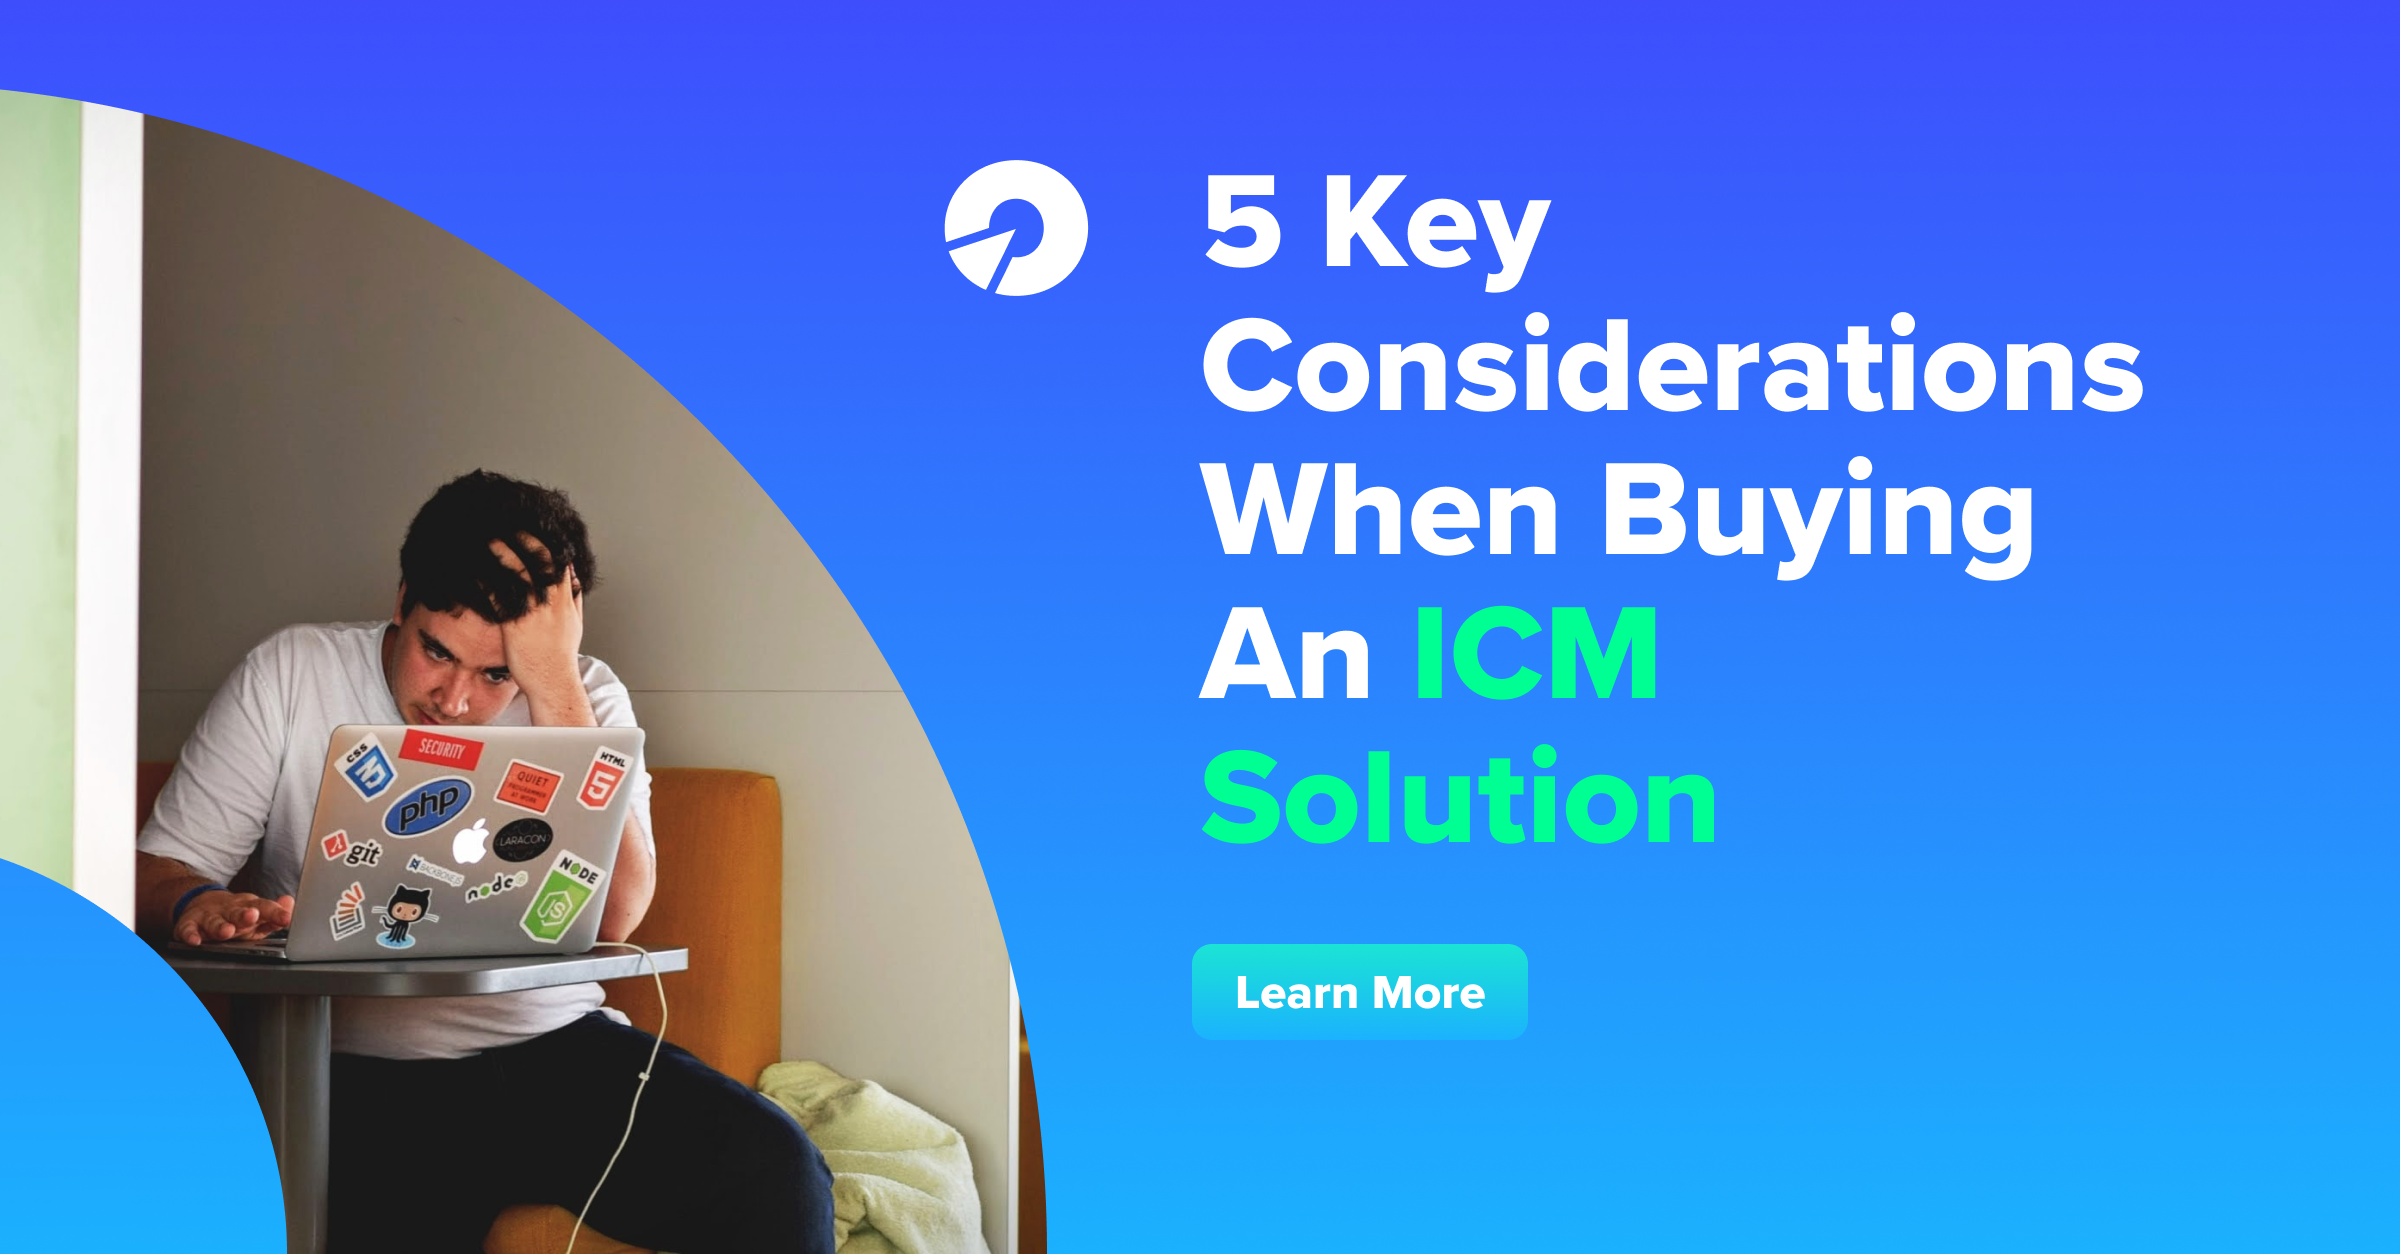 5 Key Considerations When Buying An ICM Solution